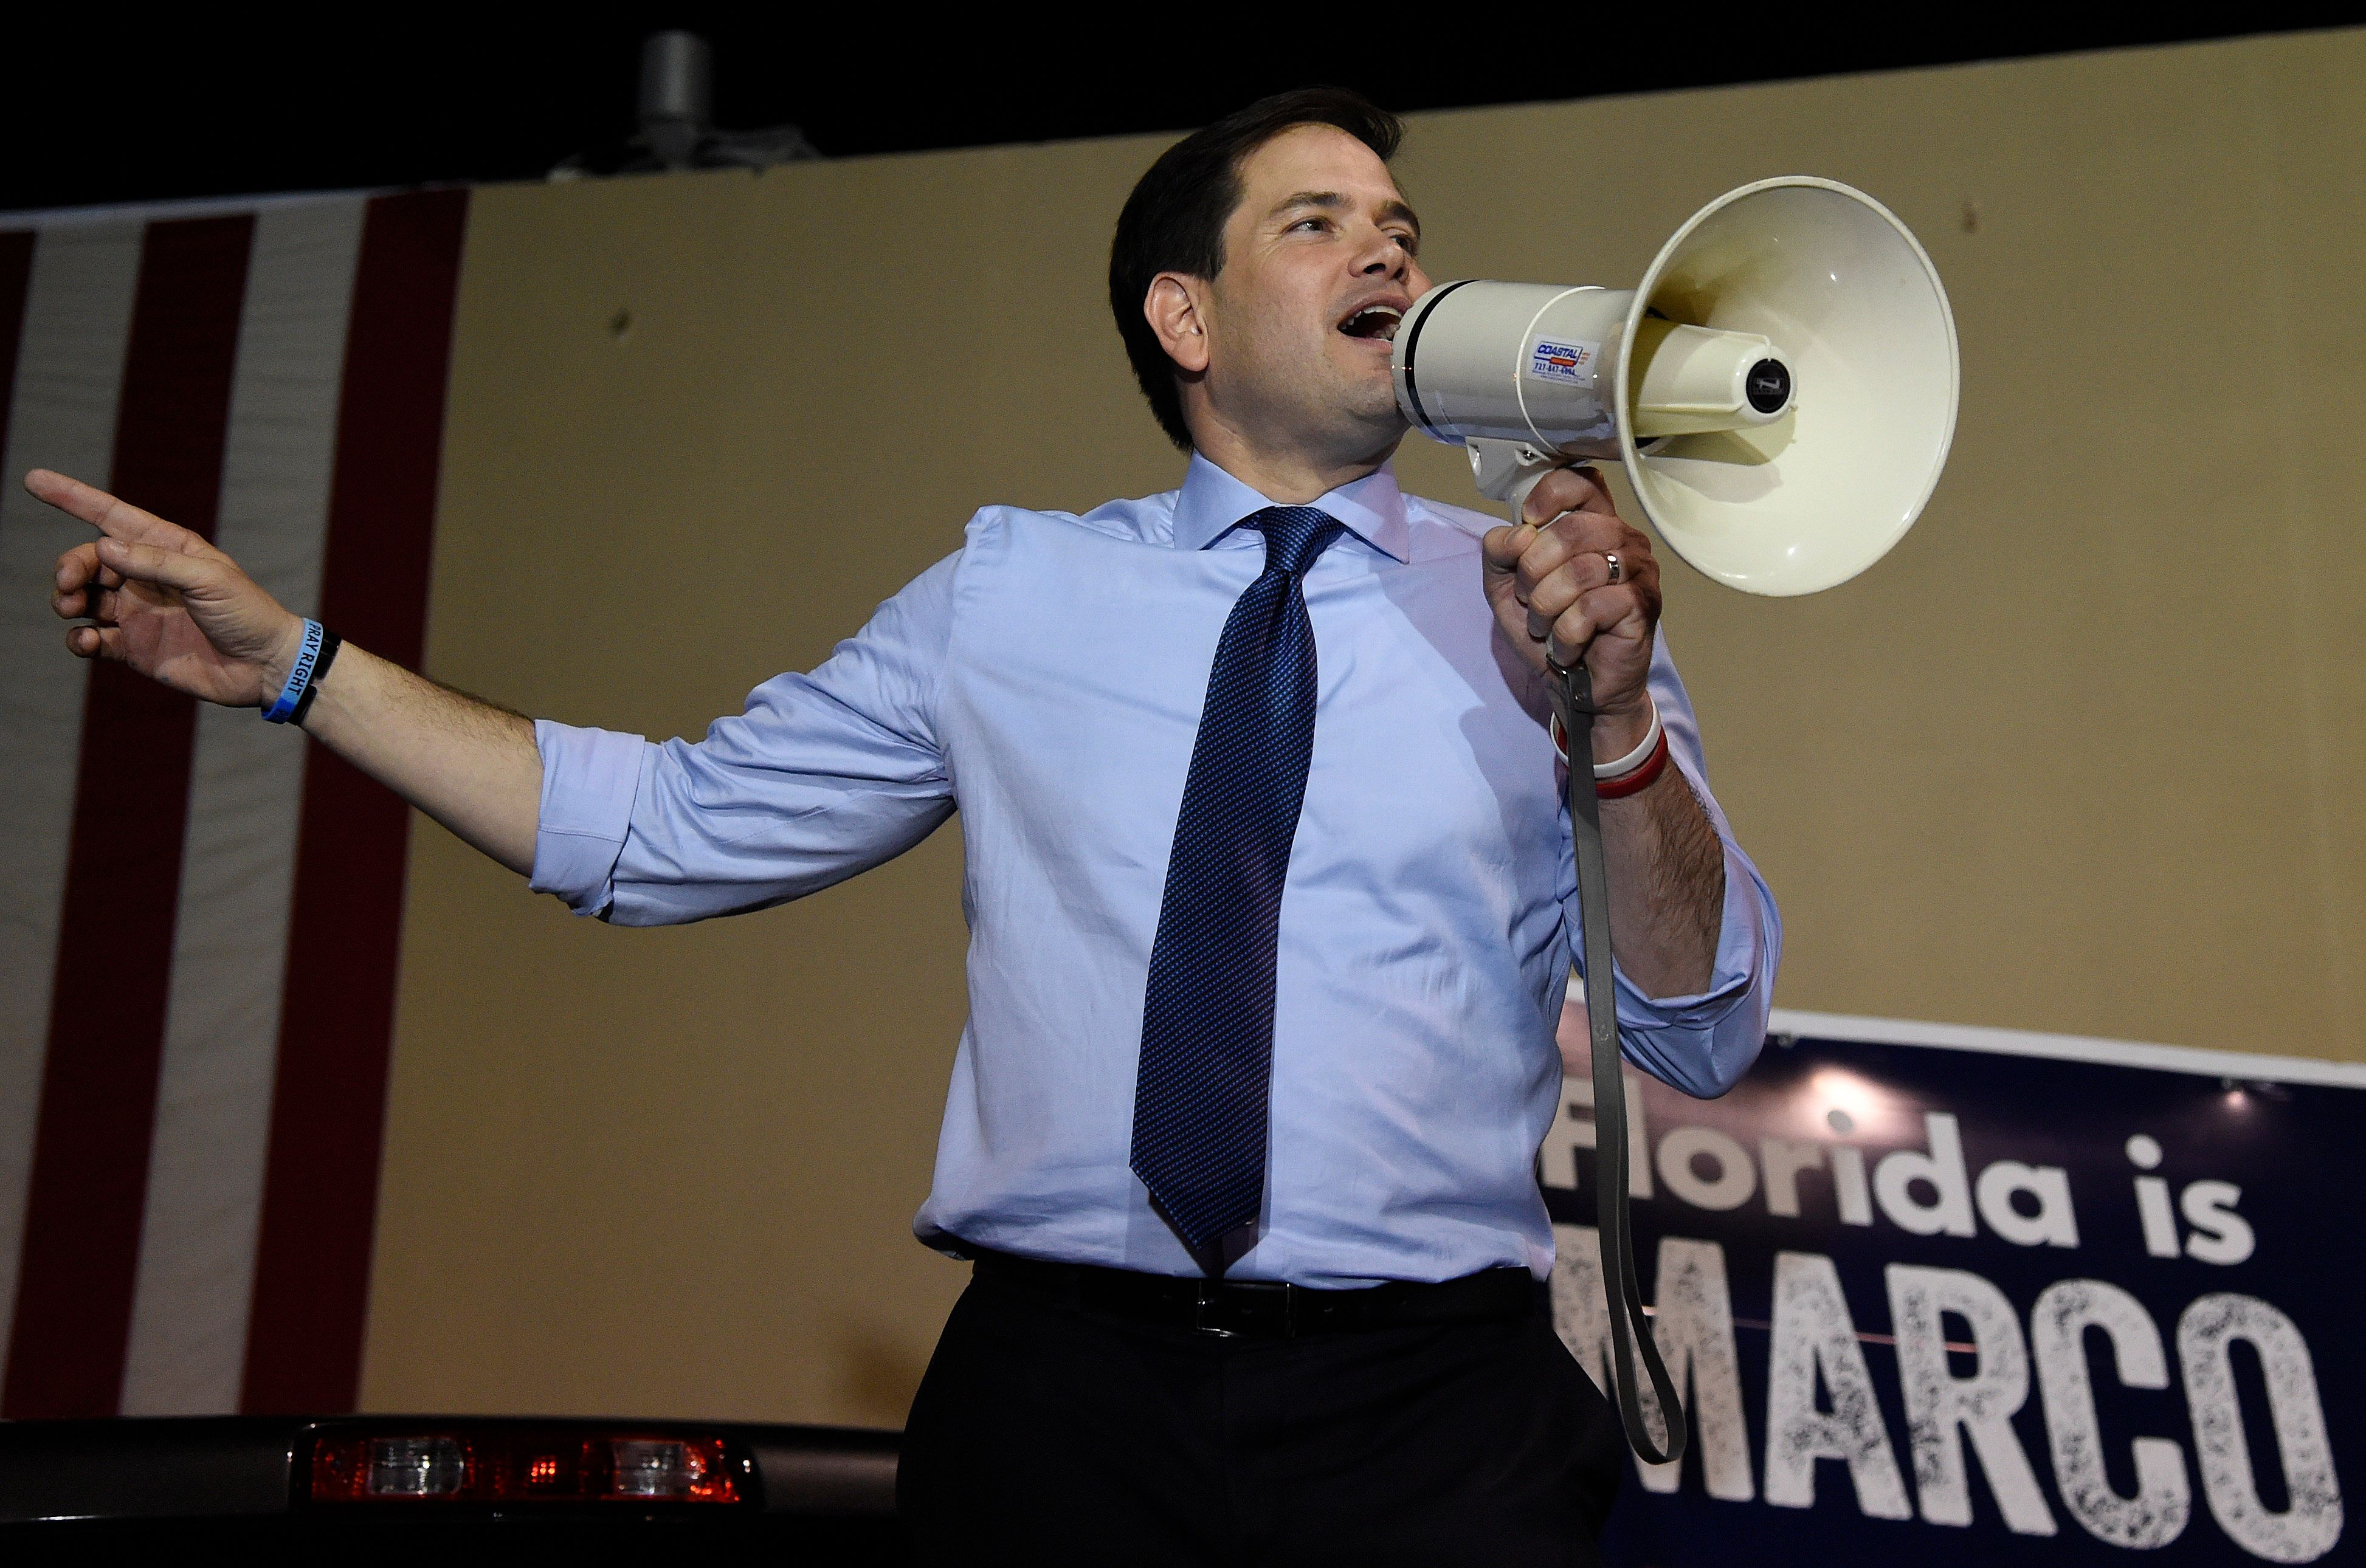 Florida Senator and Republican presidential candidate Marco Rubio addresses a rally on March 14, 2016 in Miami, Florida, on the eve of crucial primary voting. Rubio trails Republican contender Donald Trump in his home state by 20 points.  / AFP / RHONA WISE        (Photo credit should read RHONA WISE/AFP/Getty Images)